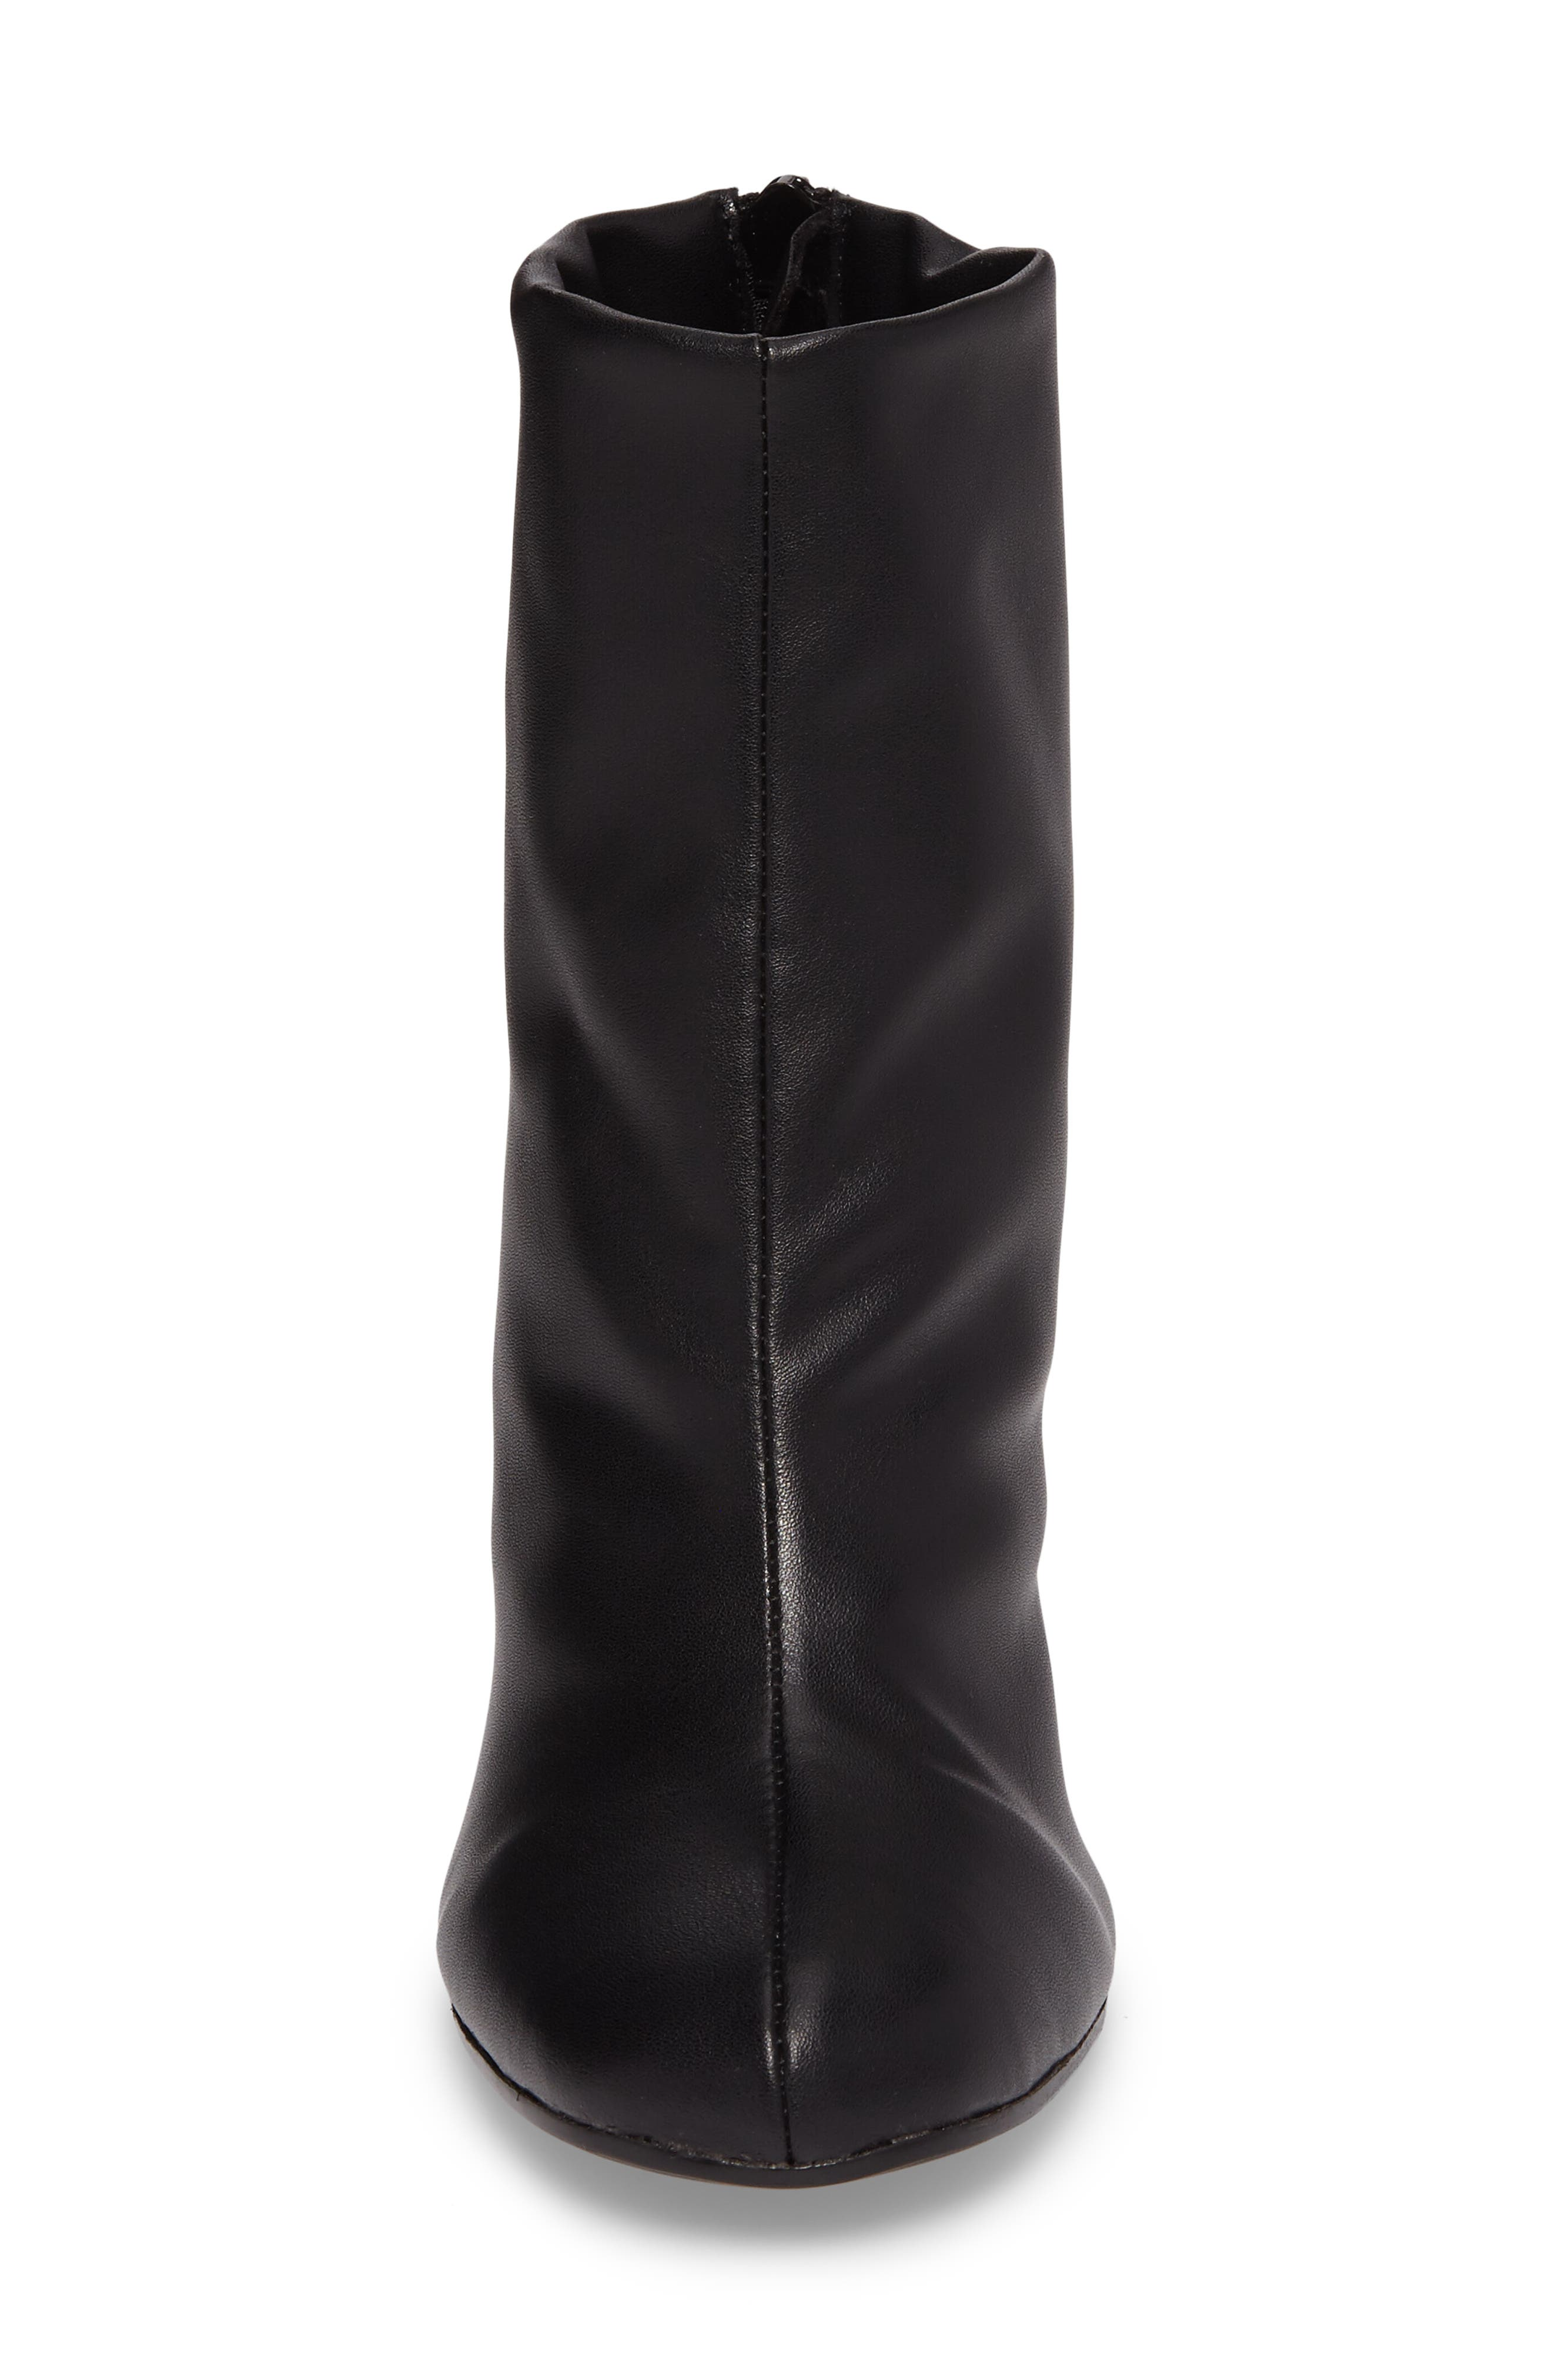 Nyx Stretch Bootie,                             Alternate thumbnail 4, color,                             Black Nappa Leather